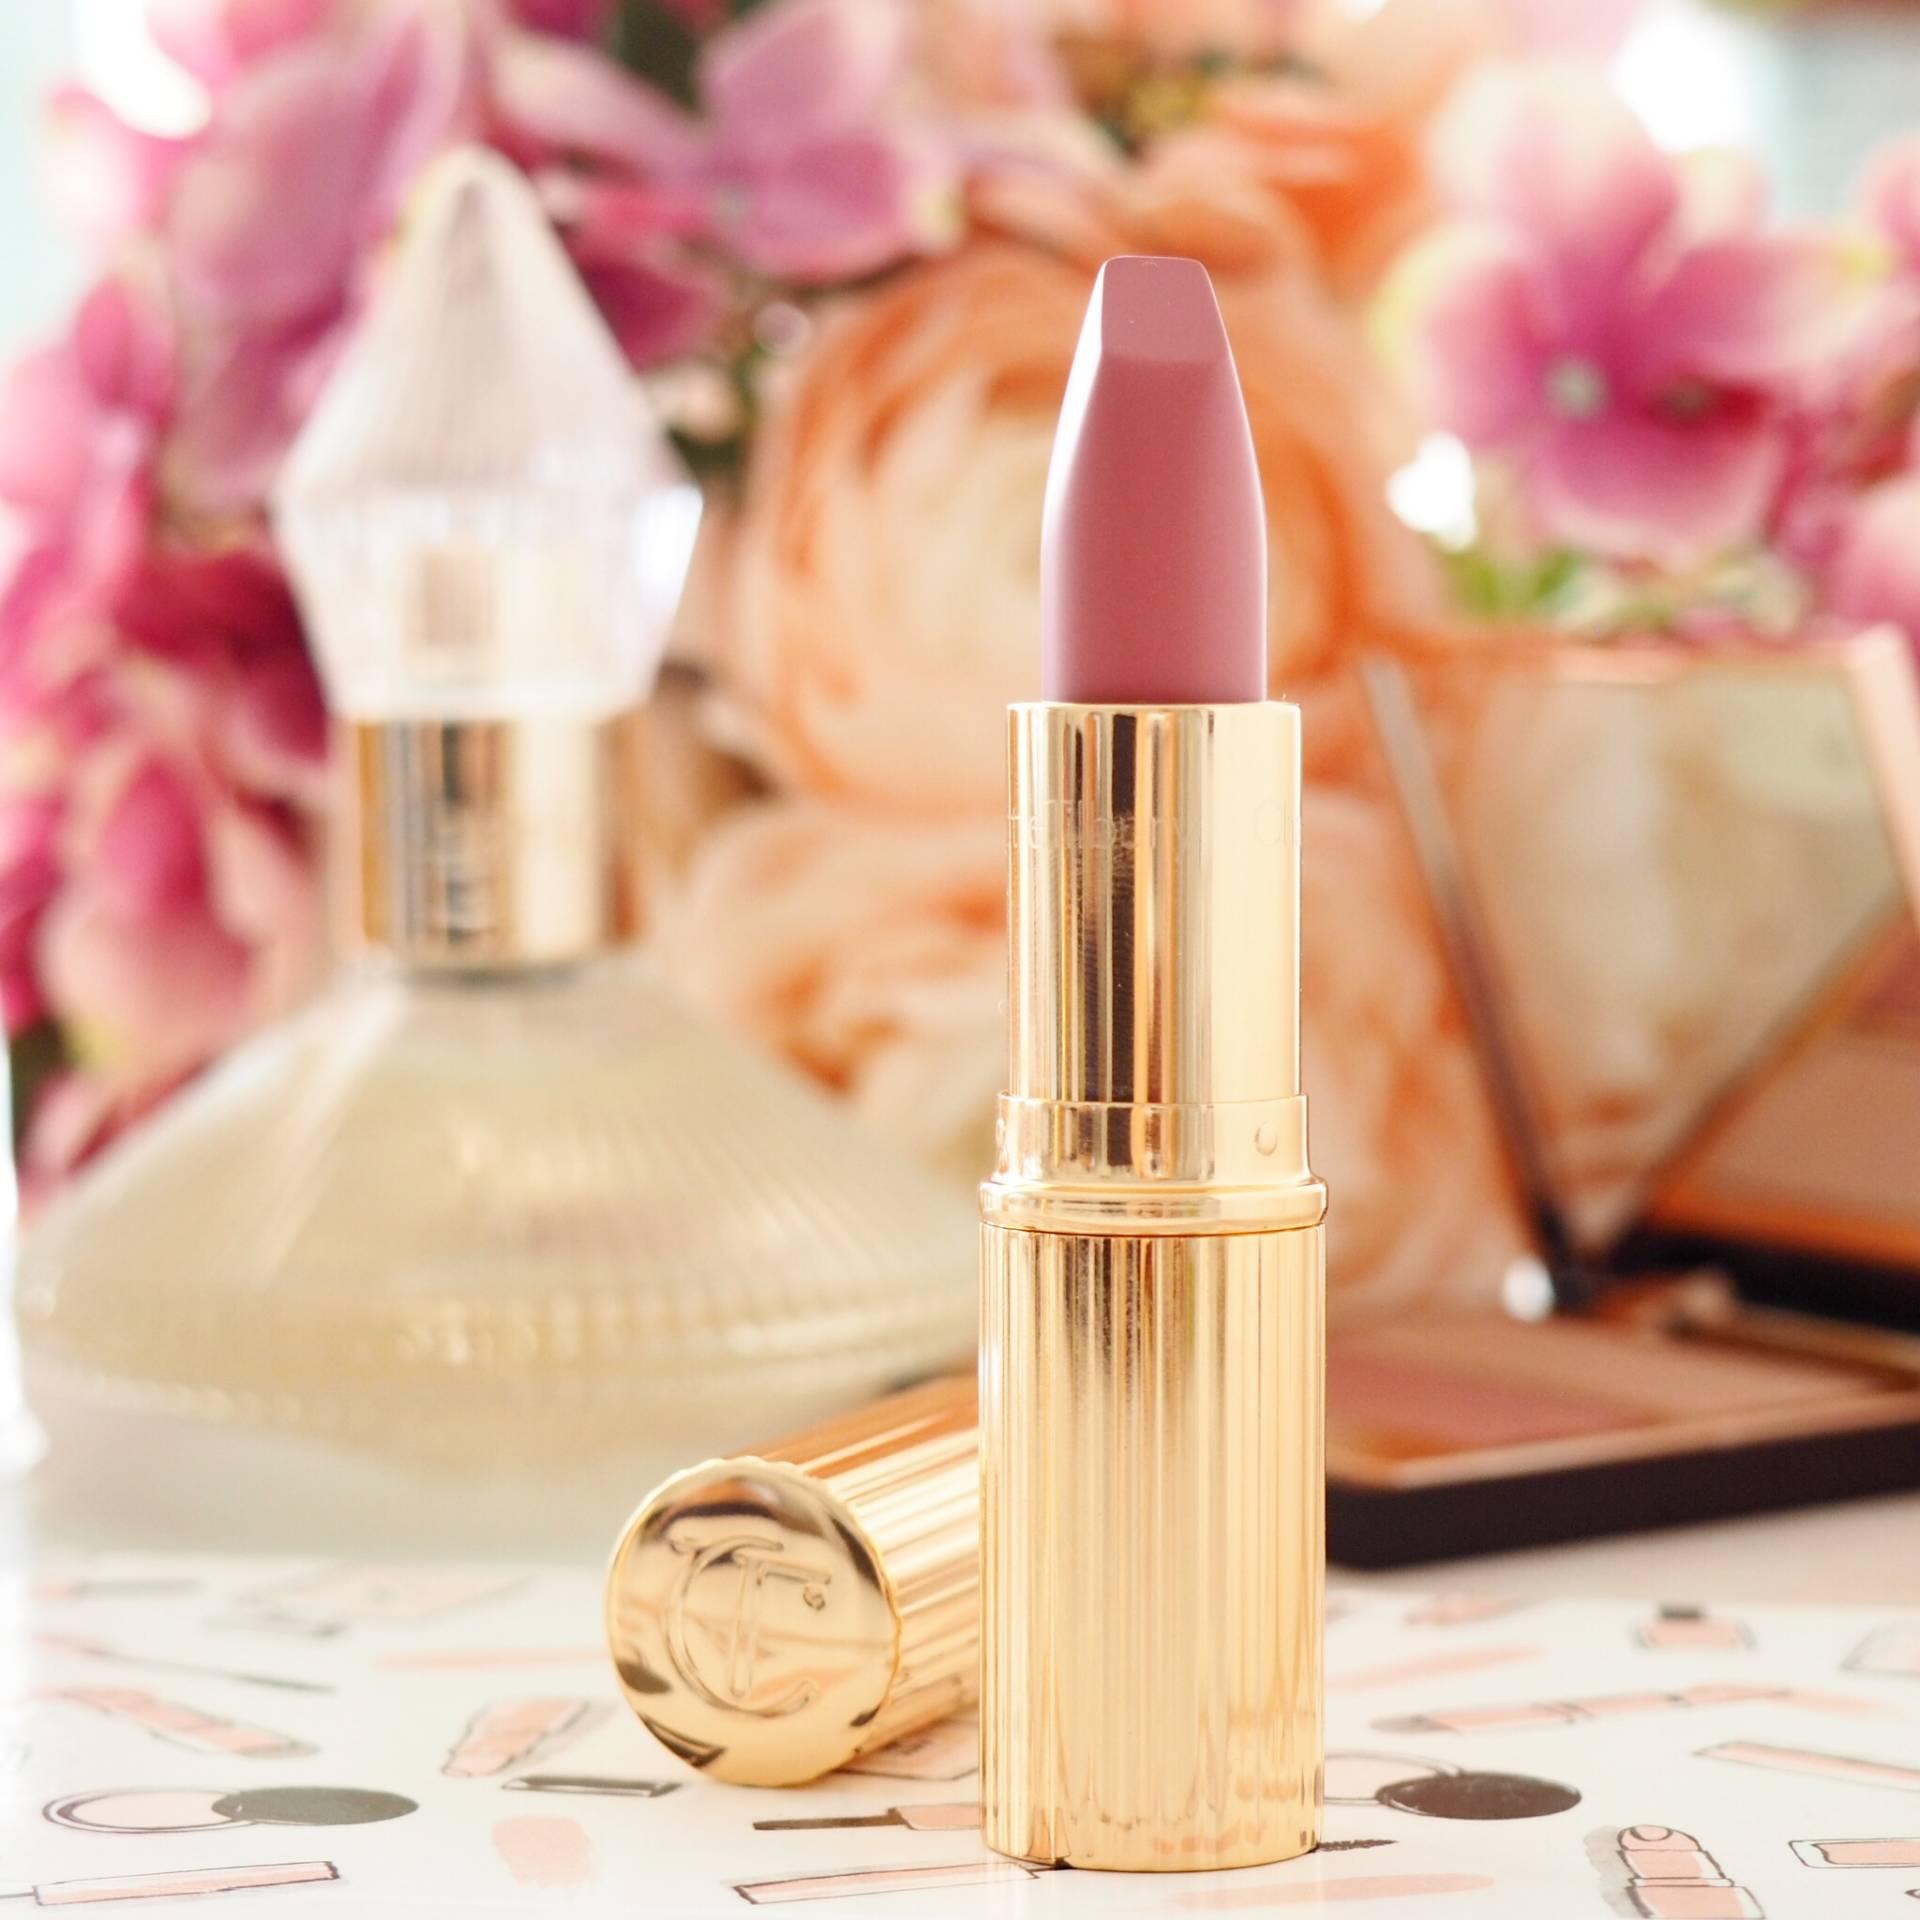 Charlotte Tilbury Between The Sheets Lipstick Review and Swatches